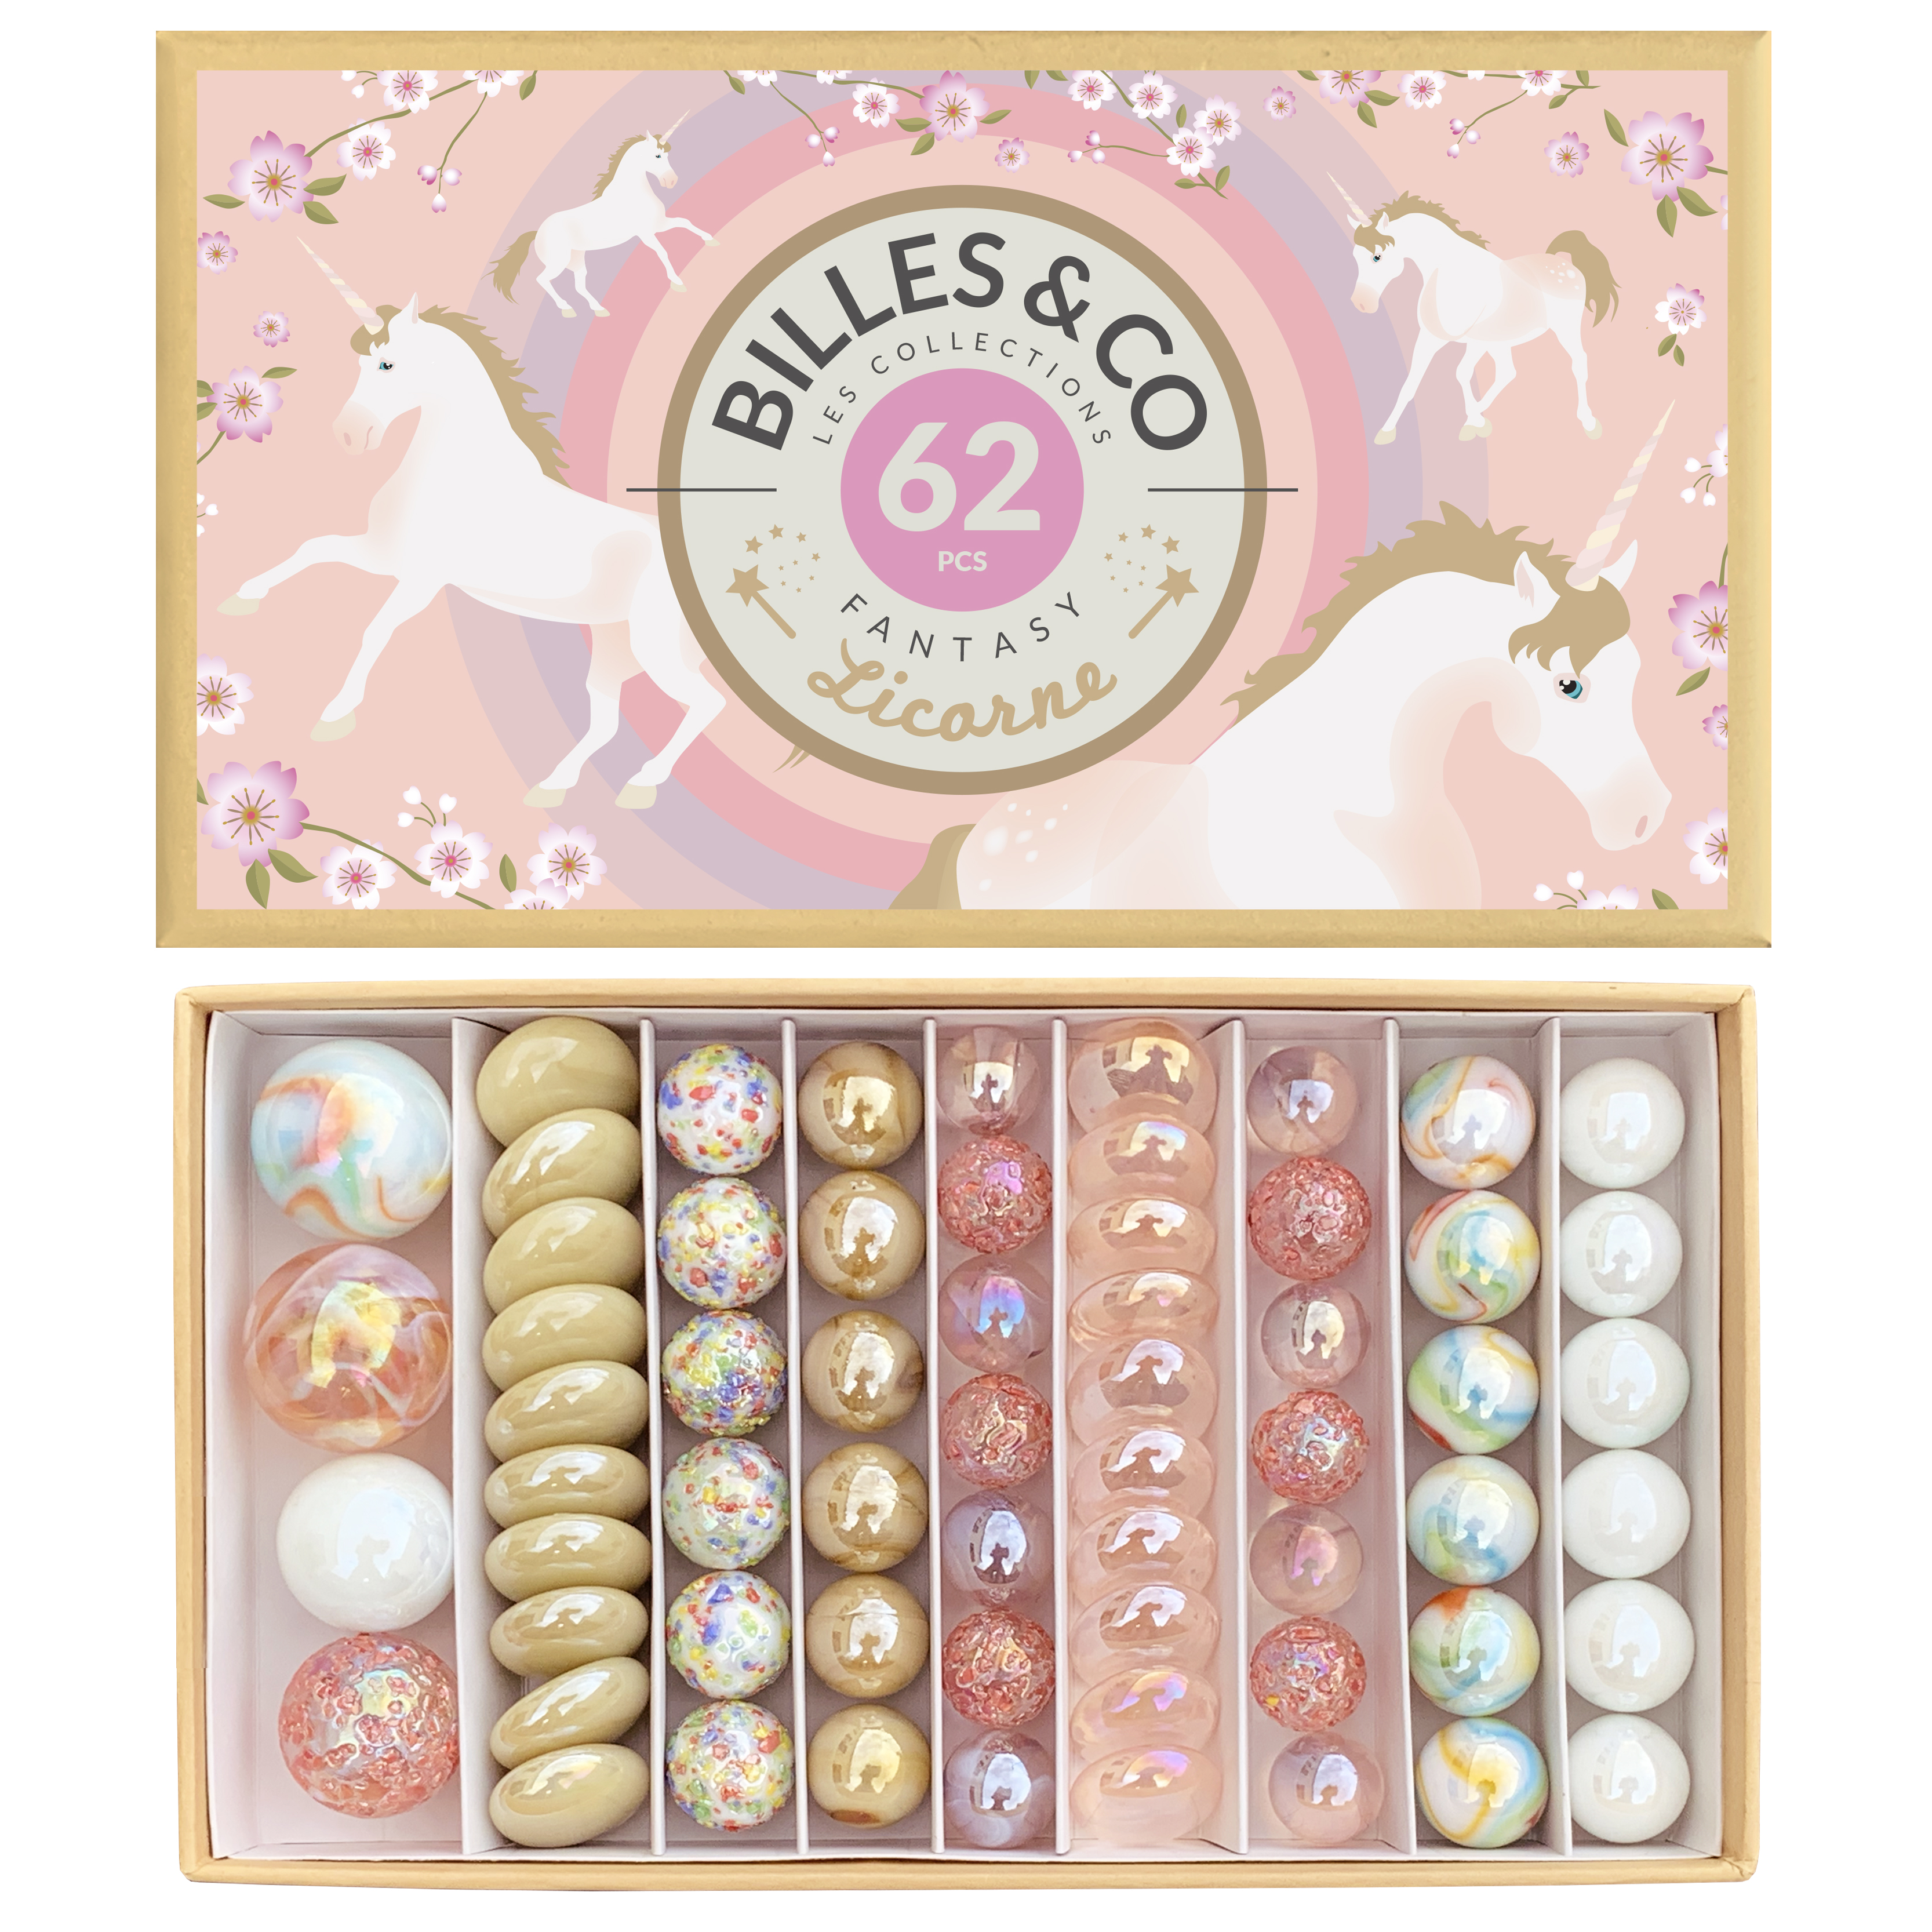 Coffret de billes licorne Billes and Co